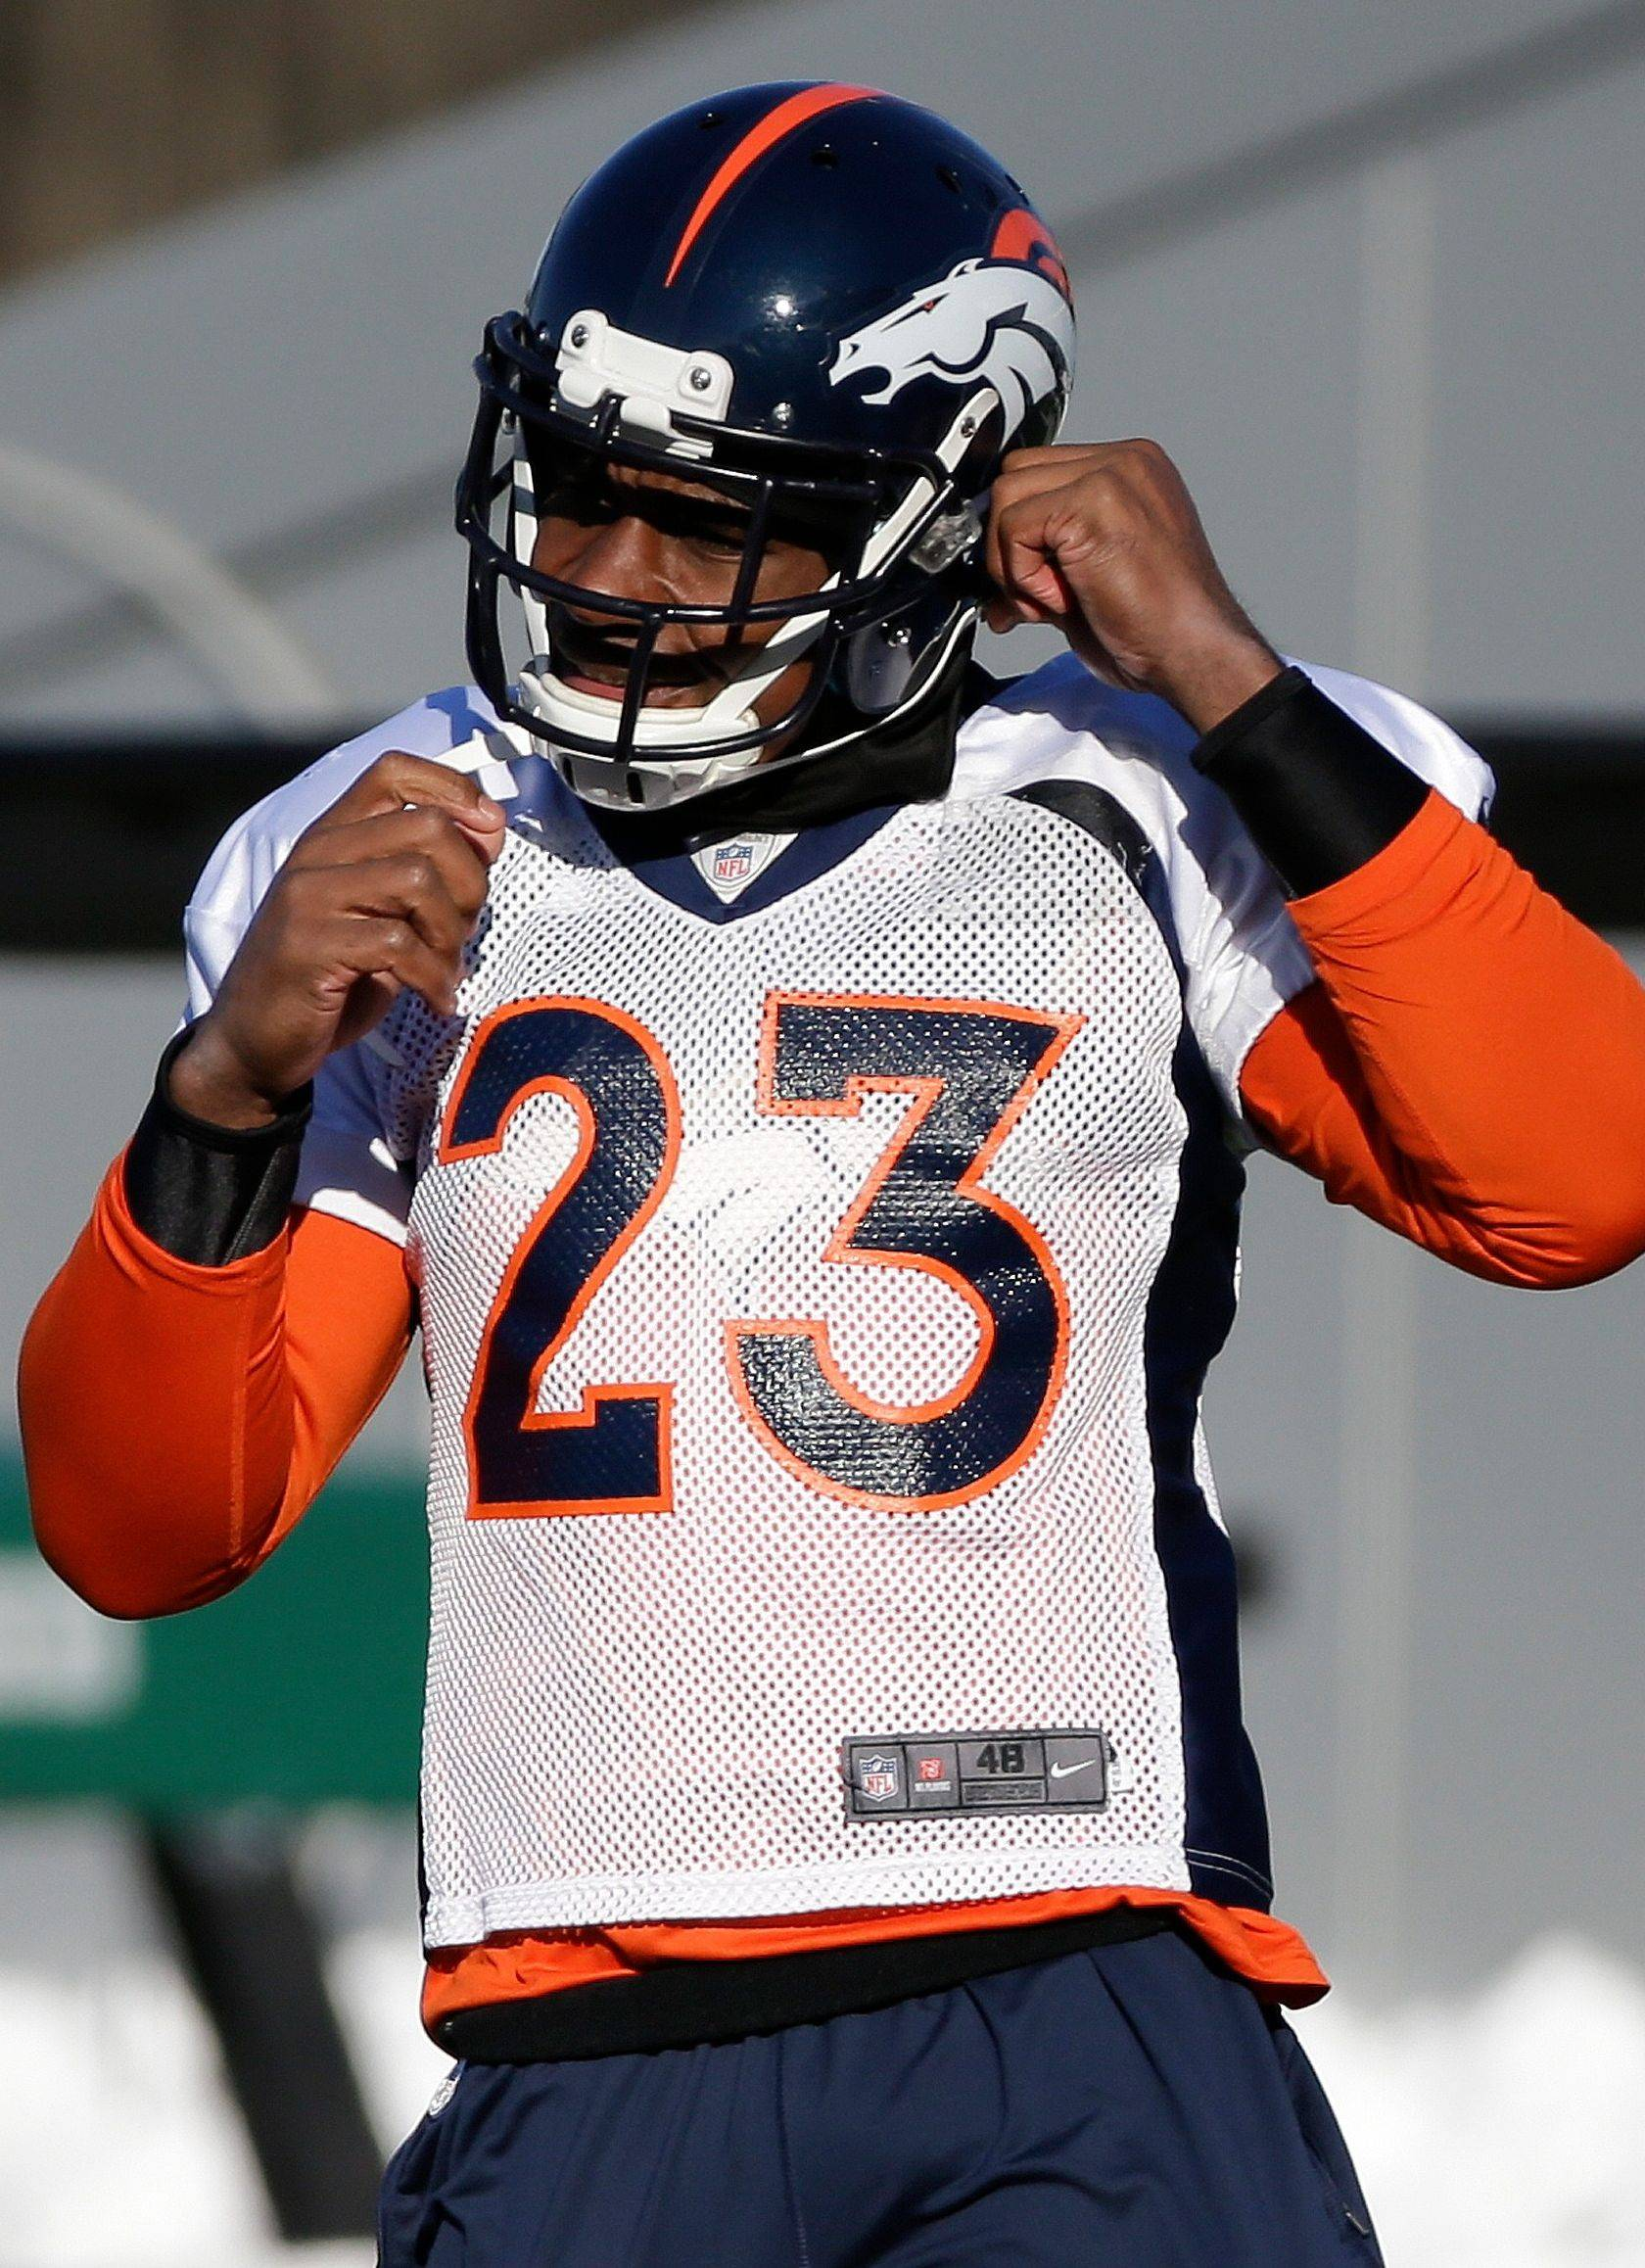 Denver Broncos cornerback Quentin Jammer straps on his helmet during practice Wednesday, Jan. 29, 2014, in Florham Park, N.J. The Broncos are scheduled to play the Seattle Seahawks in the NFL Super Bowl XLVIII football game Sunday, Feb. 2, in East Rutherford, N.J.